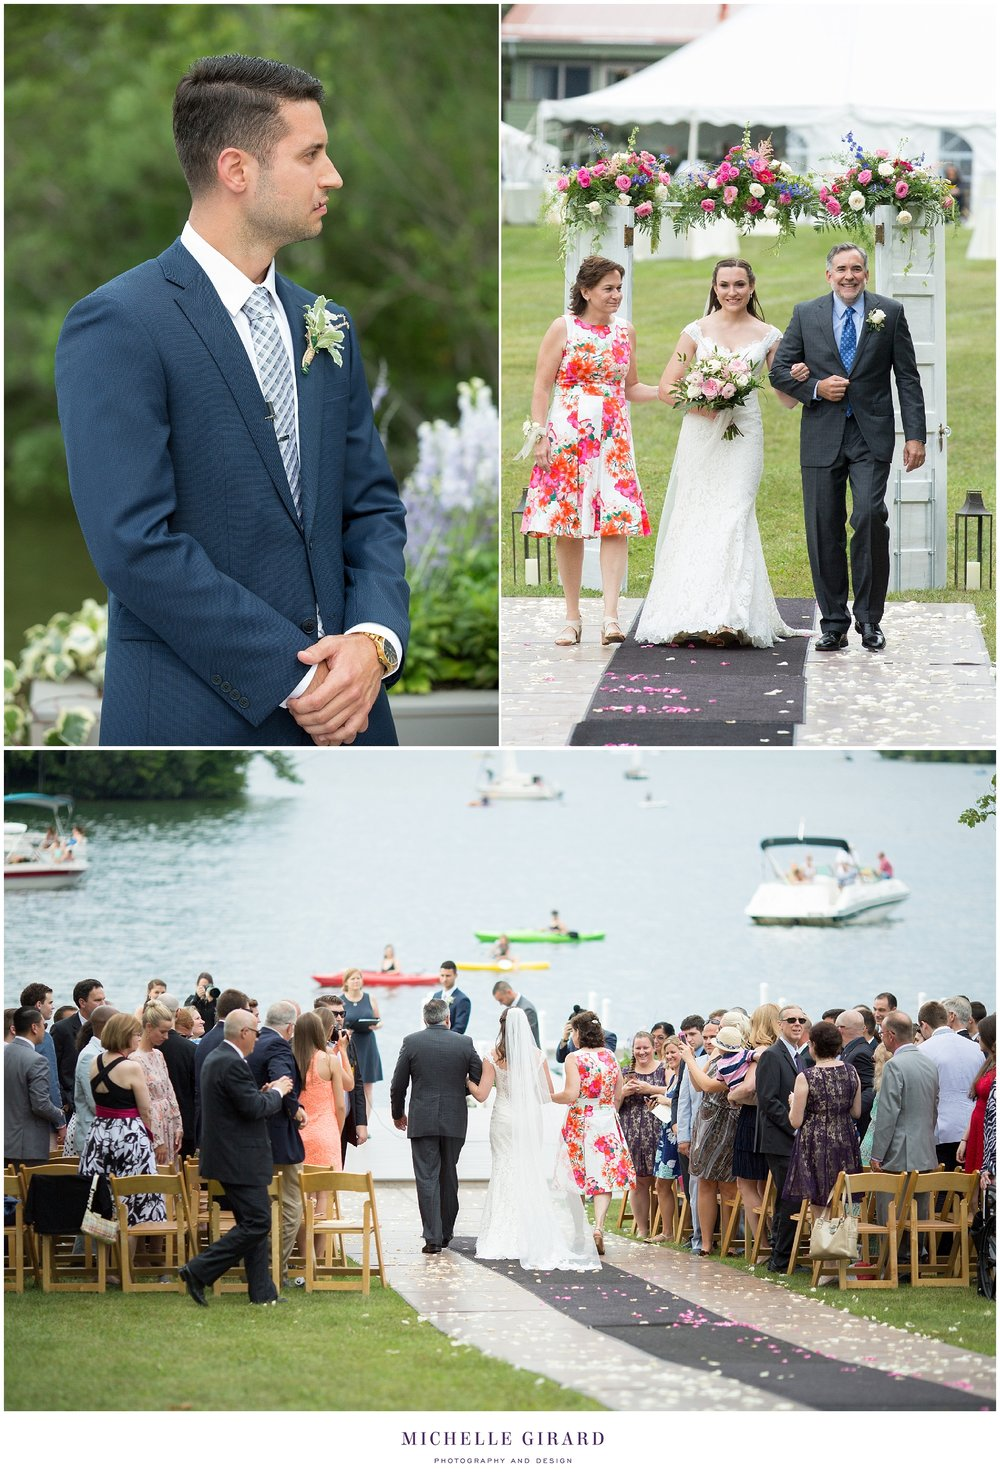 LakesideHomeWedding_BerkshiresTentReception_MichelleGirardPhotography038.jpg